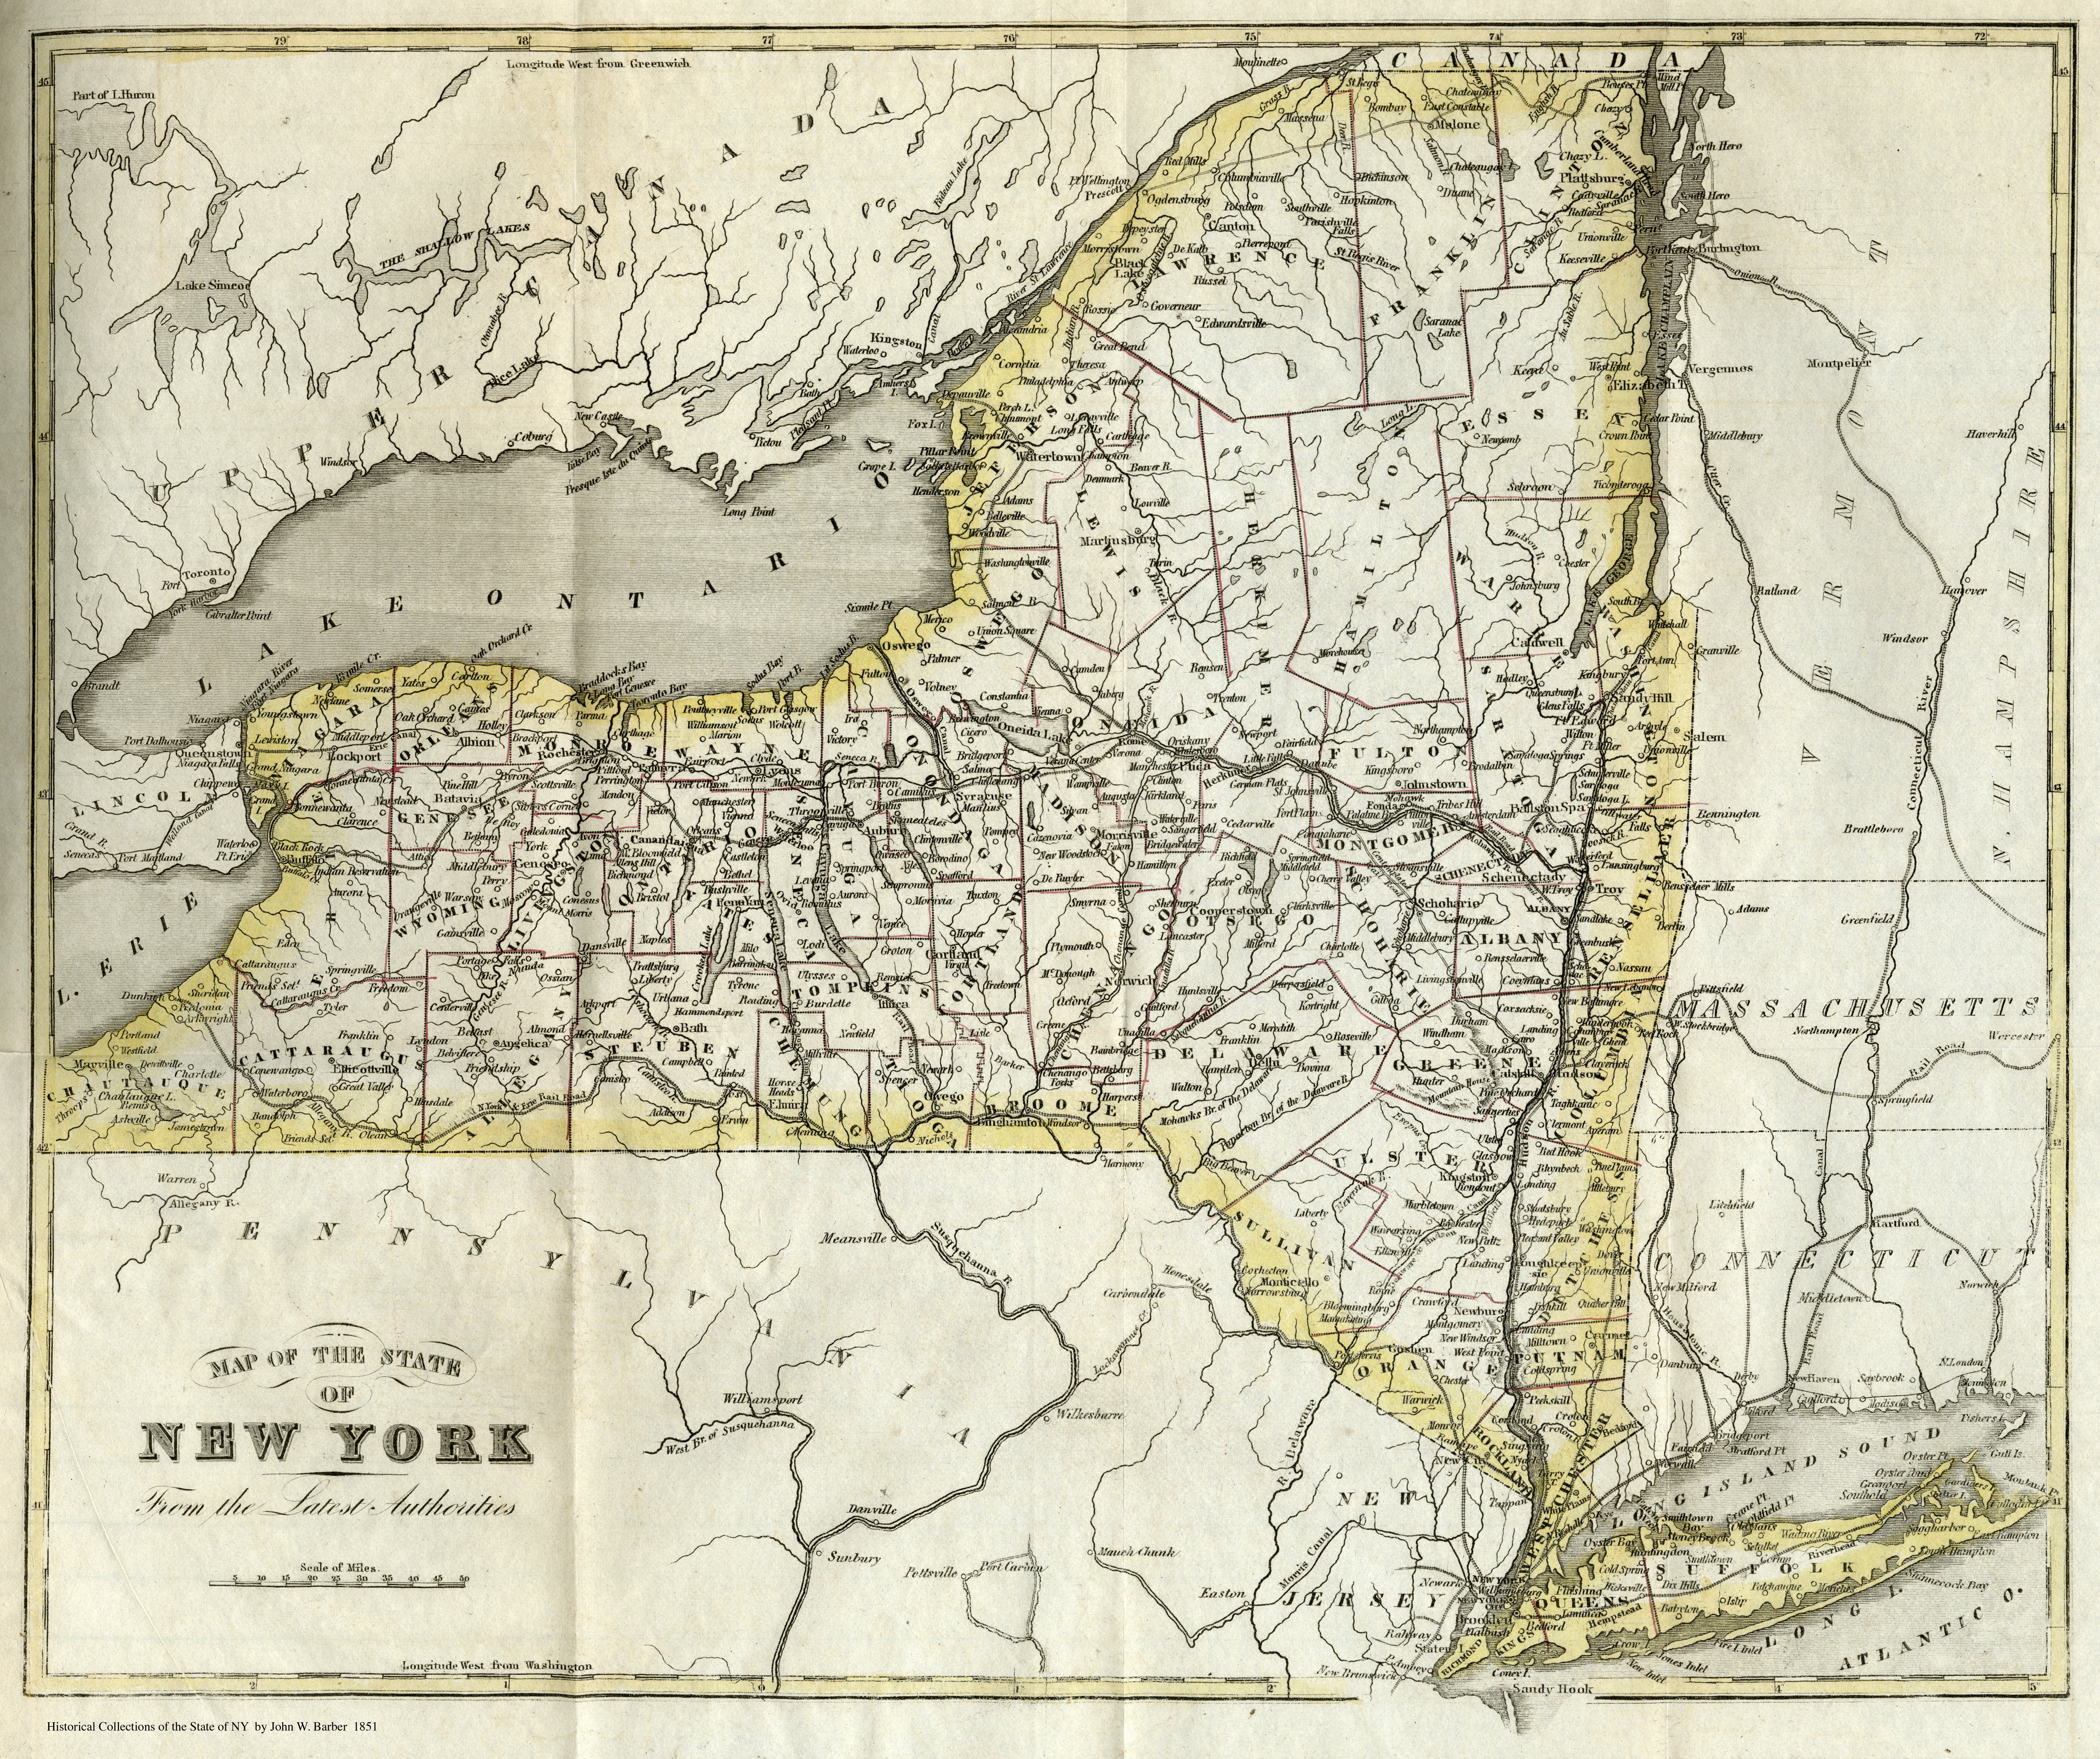 1851 map of ny from 1851 book larger image